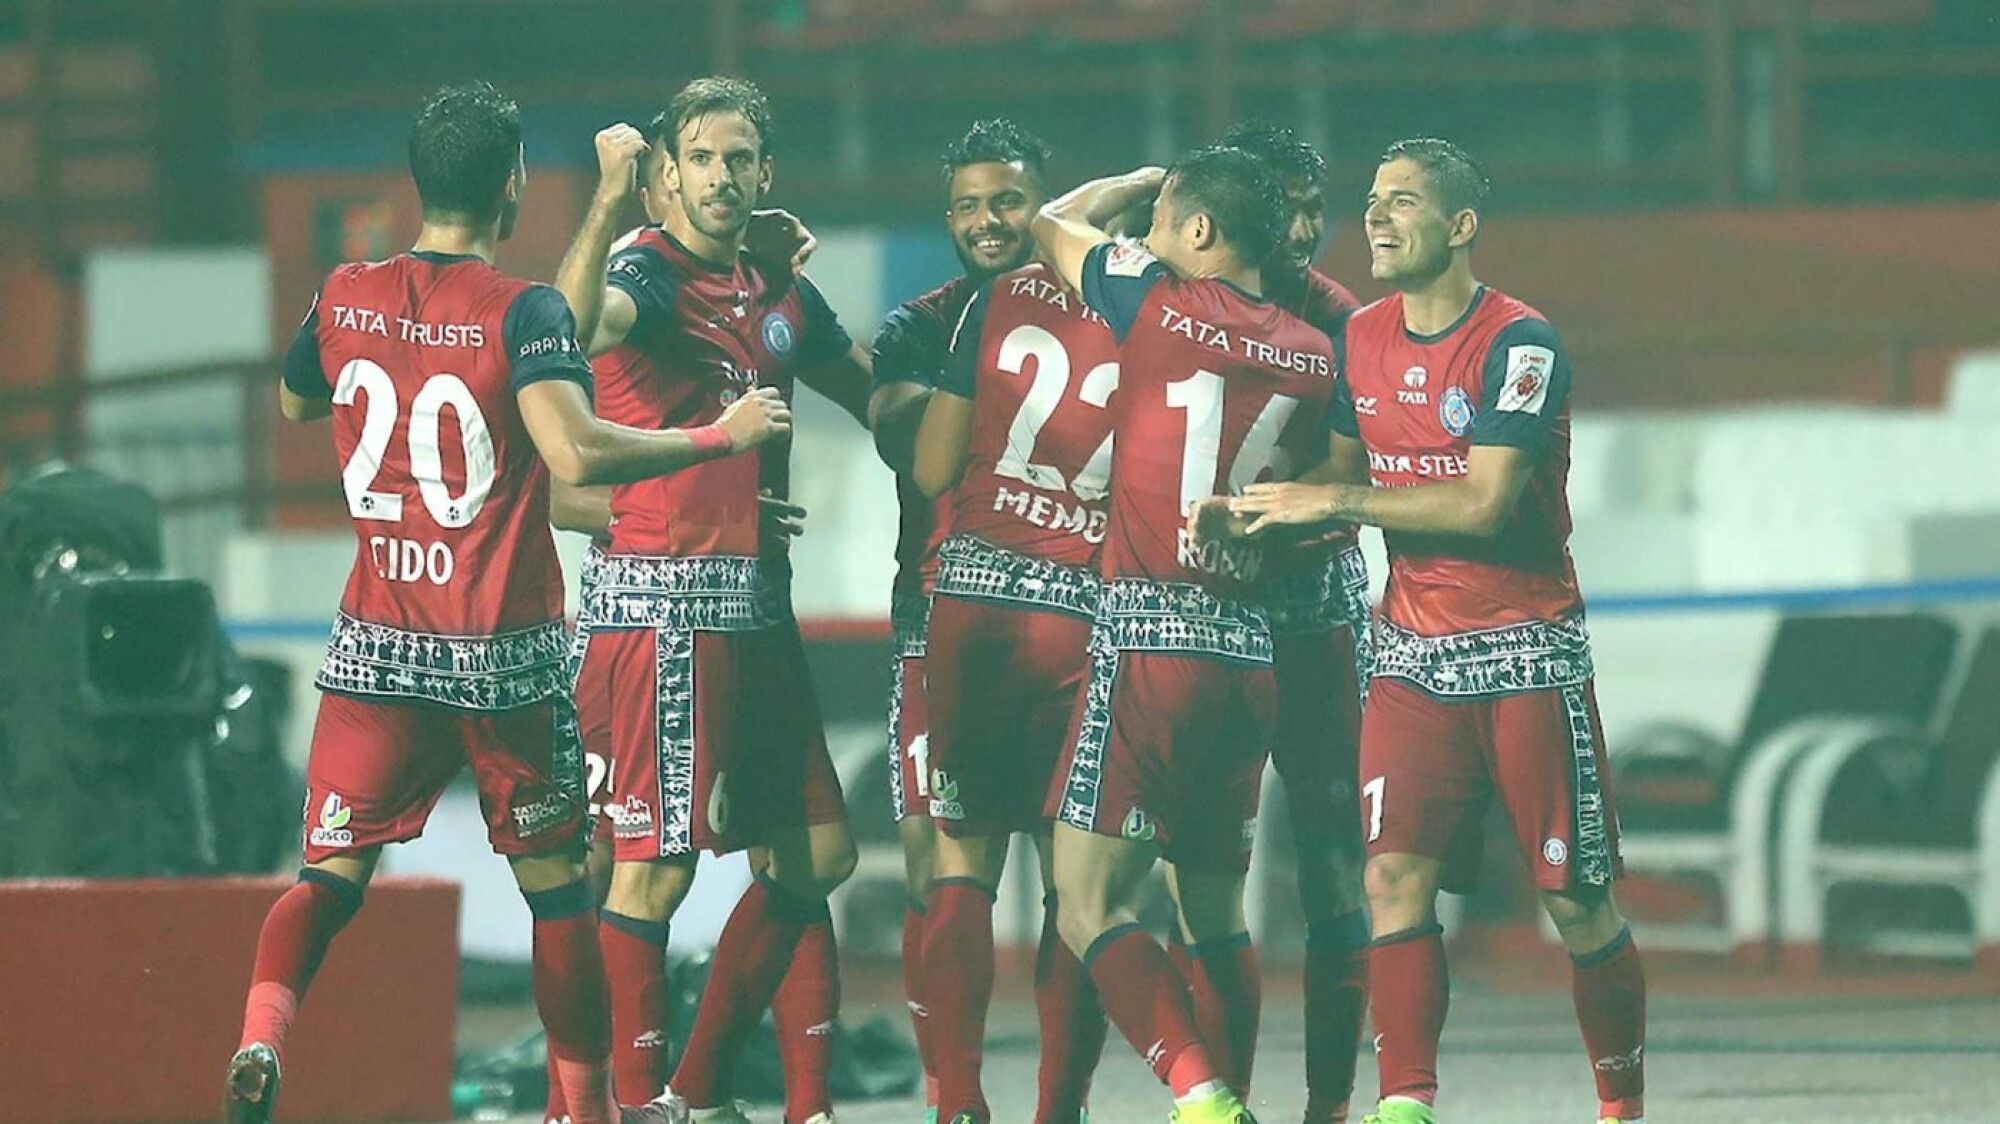 ISL 2018-19: Jamshedpur back in contention for playoff spot with win over Mumbai.